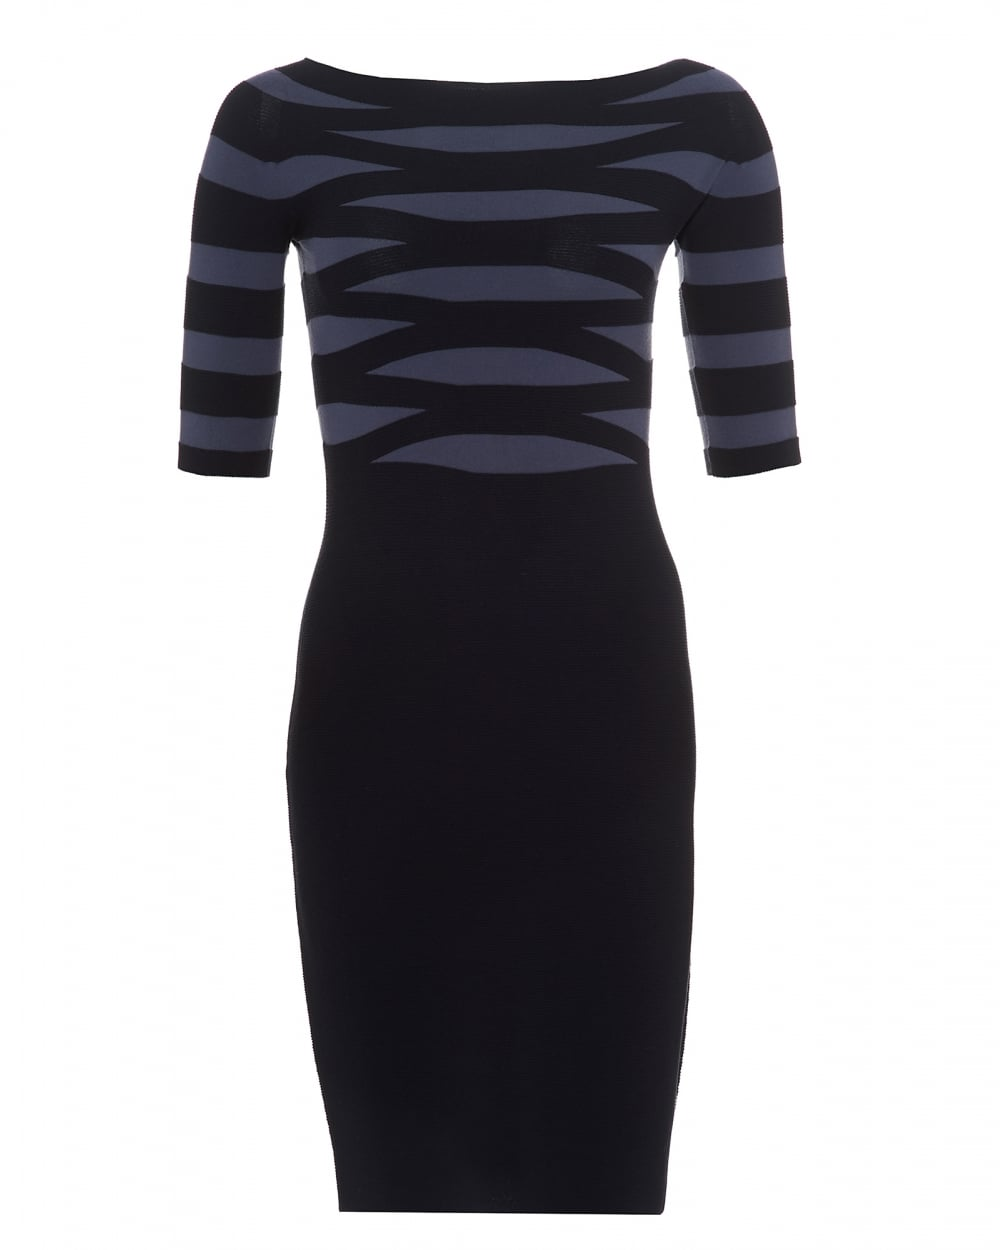 Emporio Armani Womens Banded Top Dress, Plain Skirt Navy ...